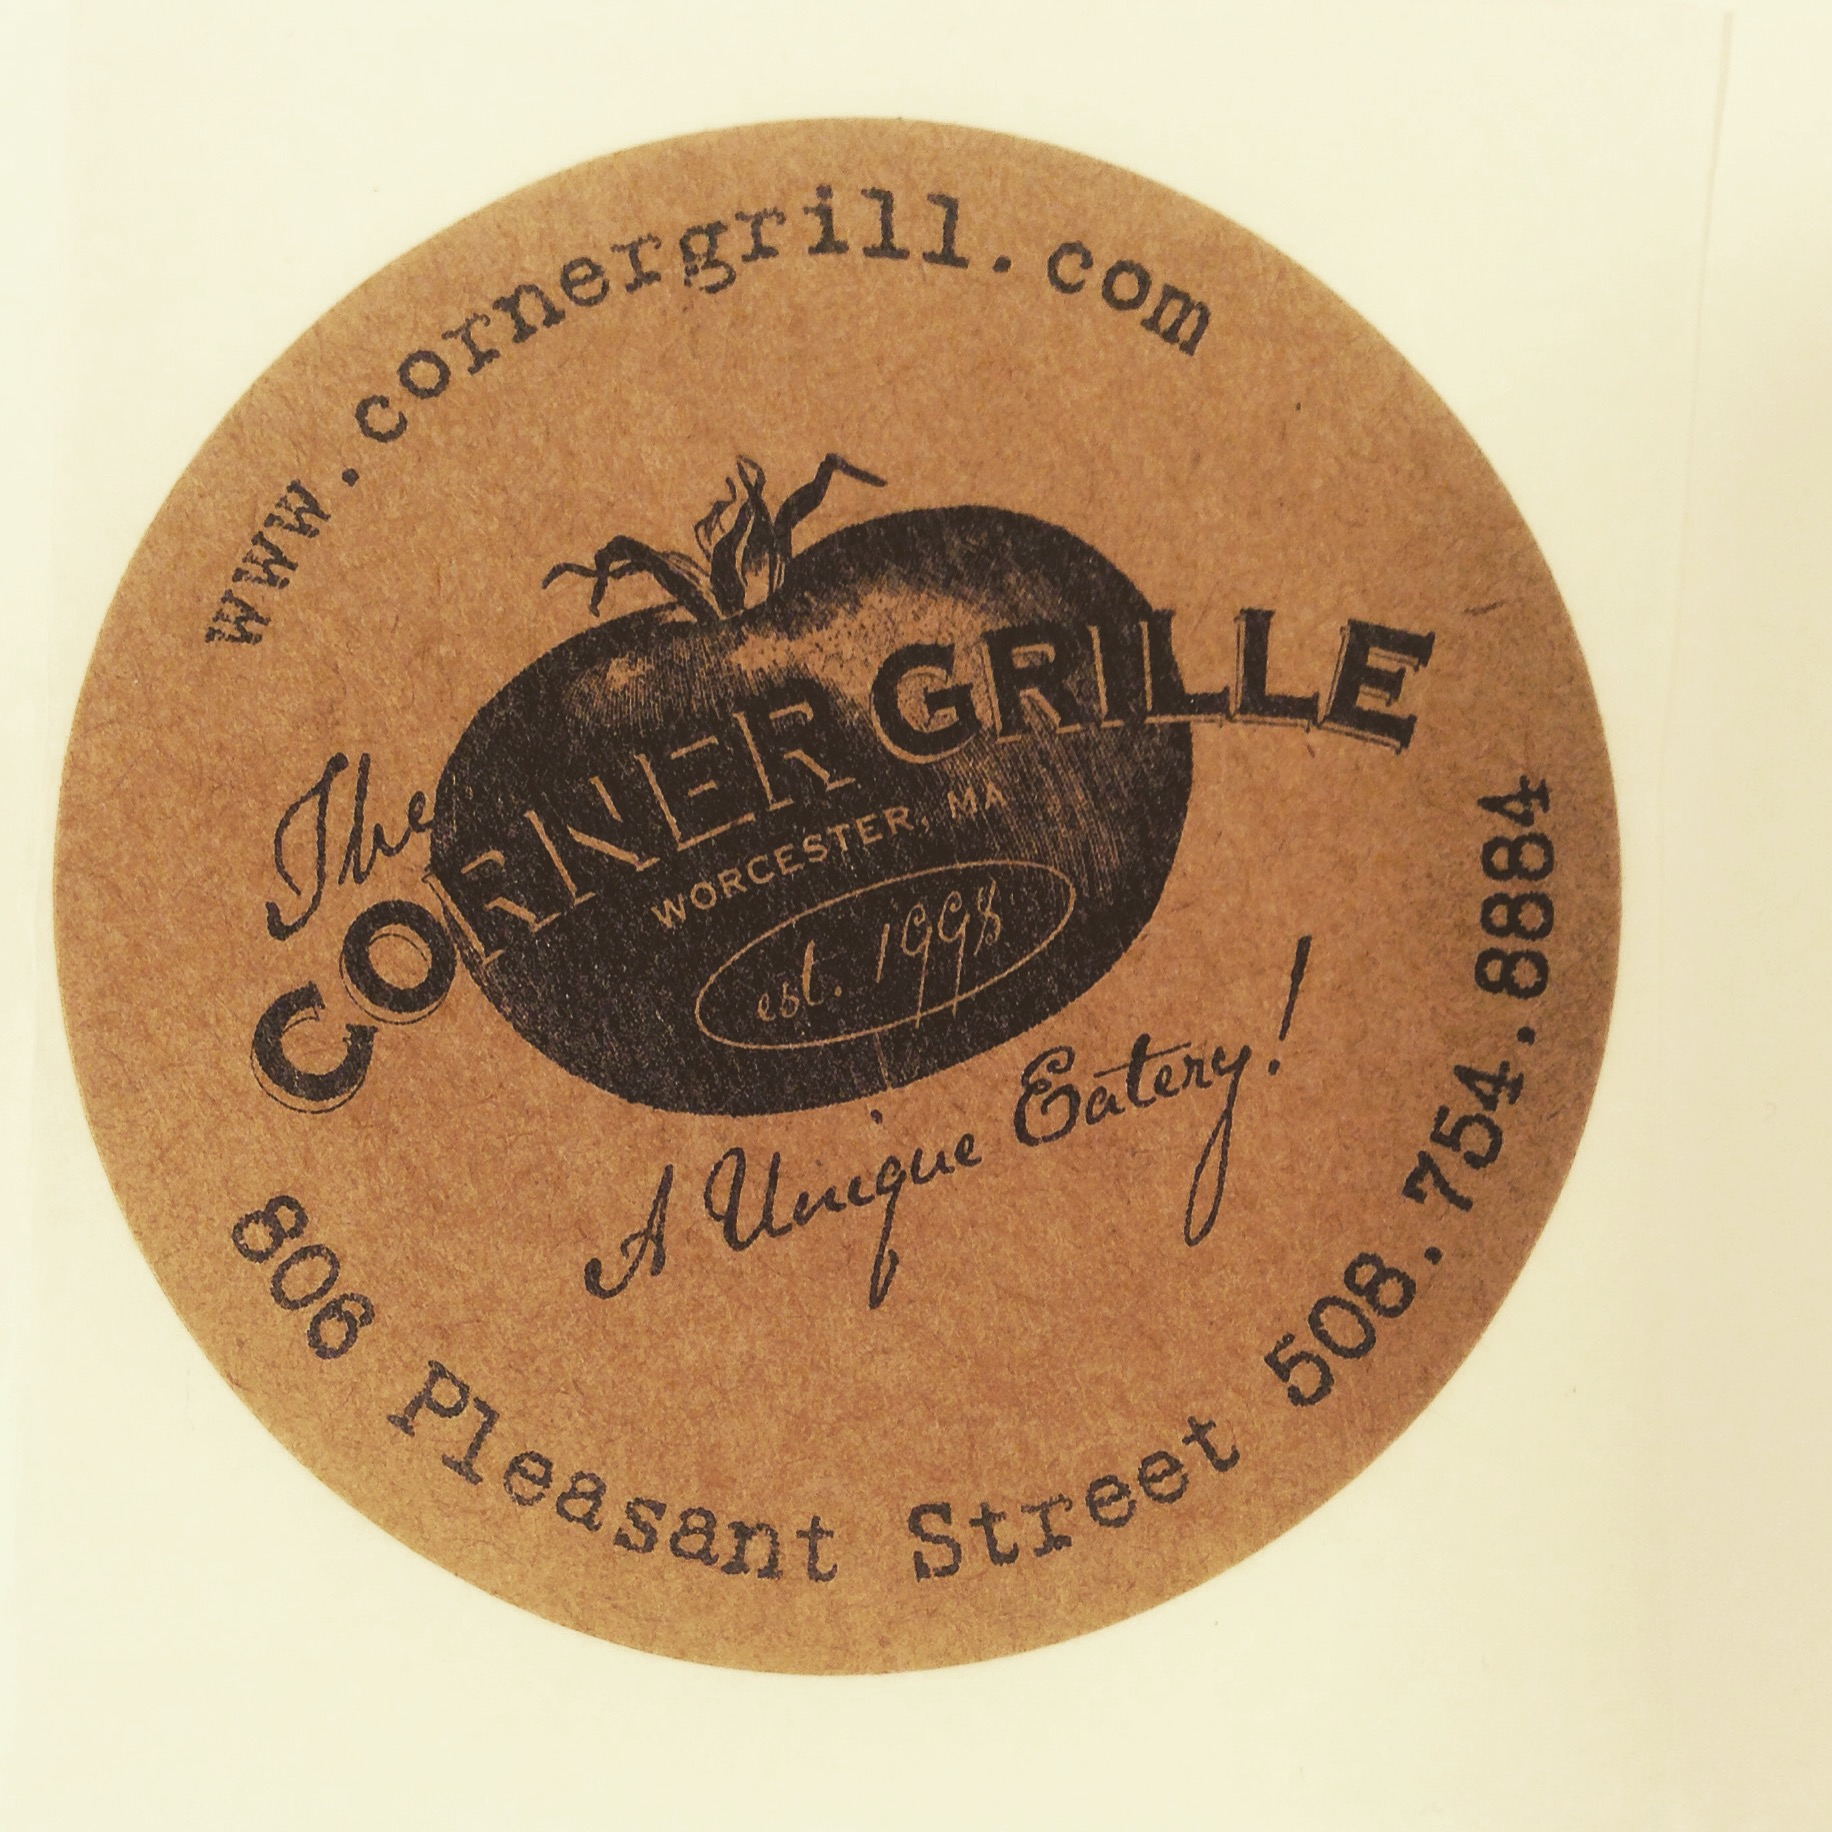 Sticker for Corner Grille